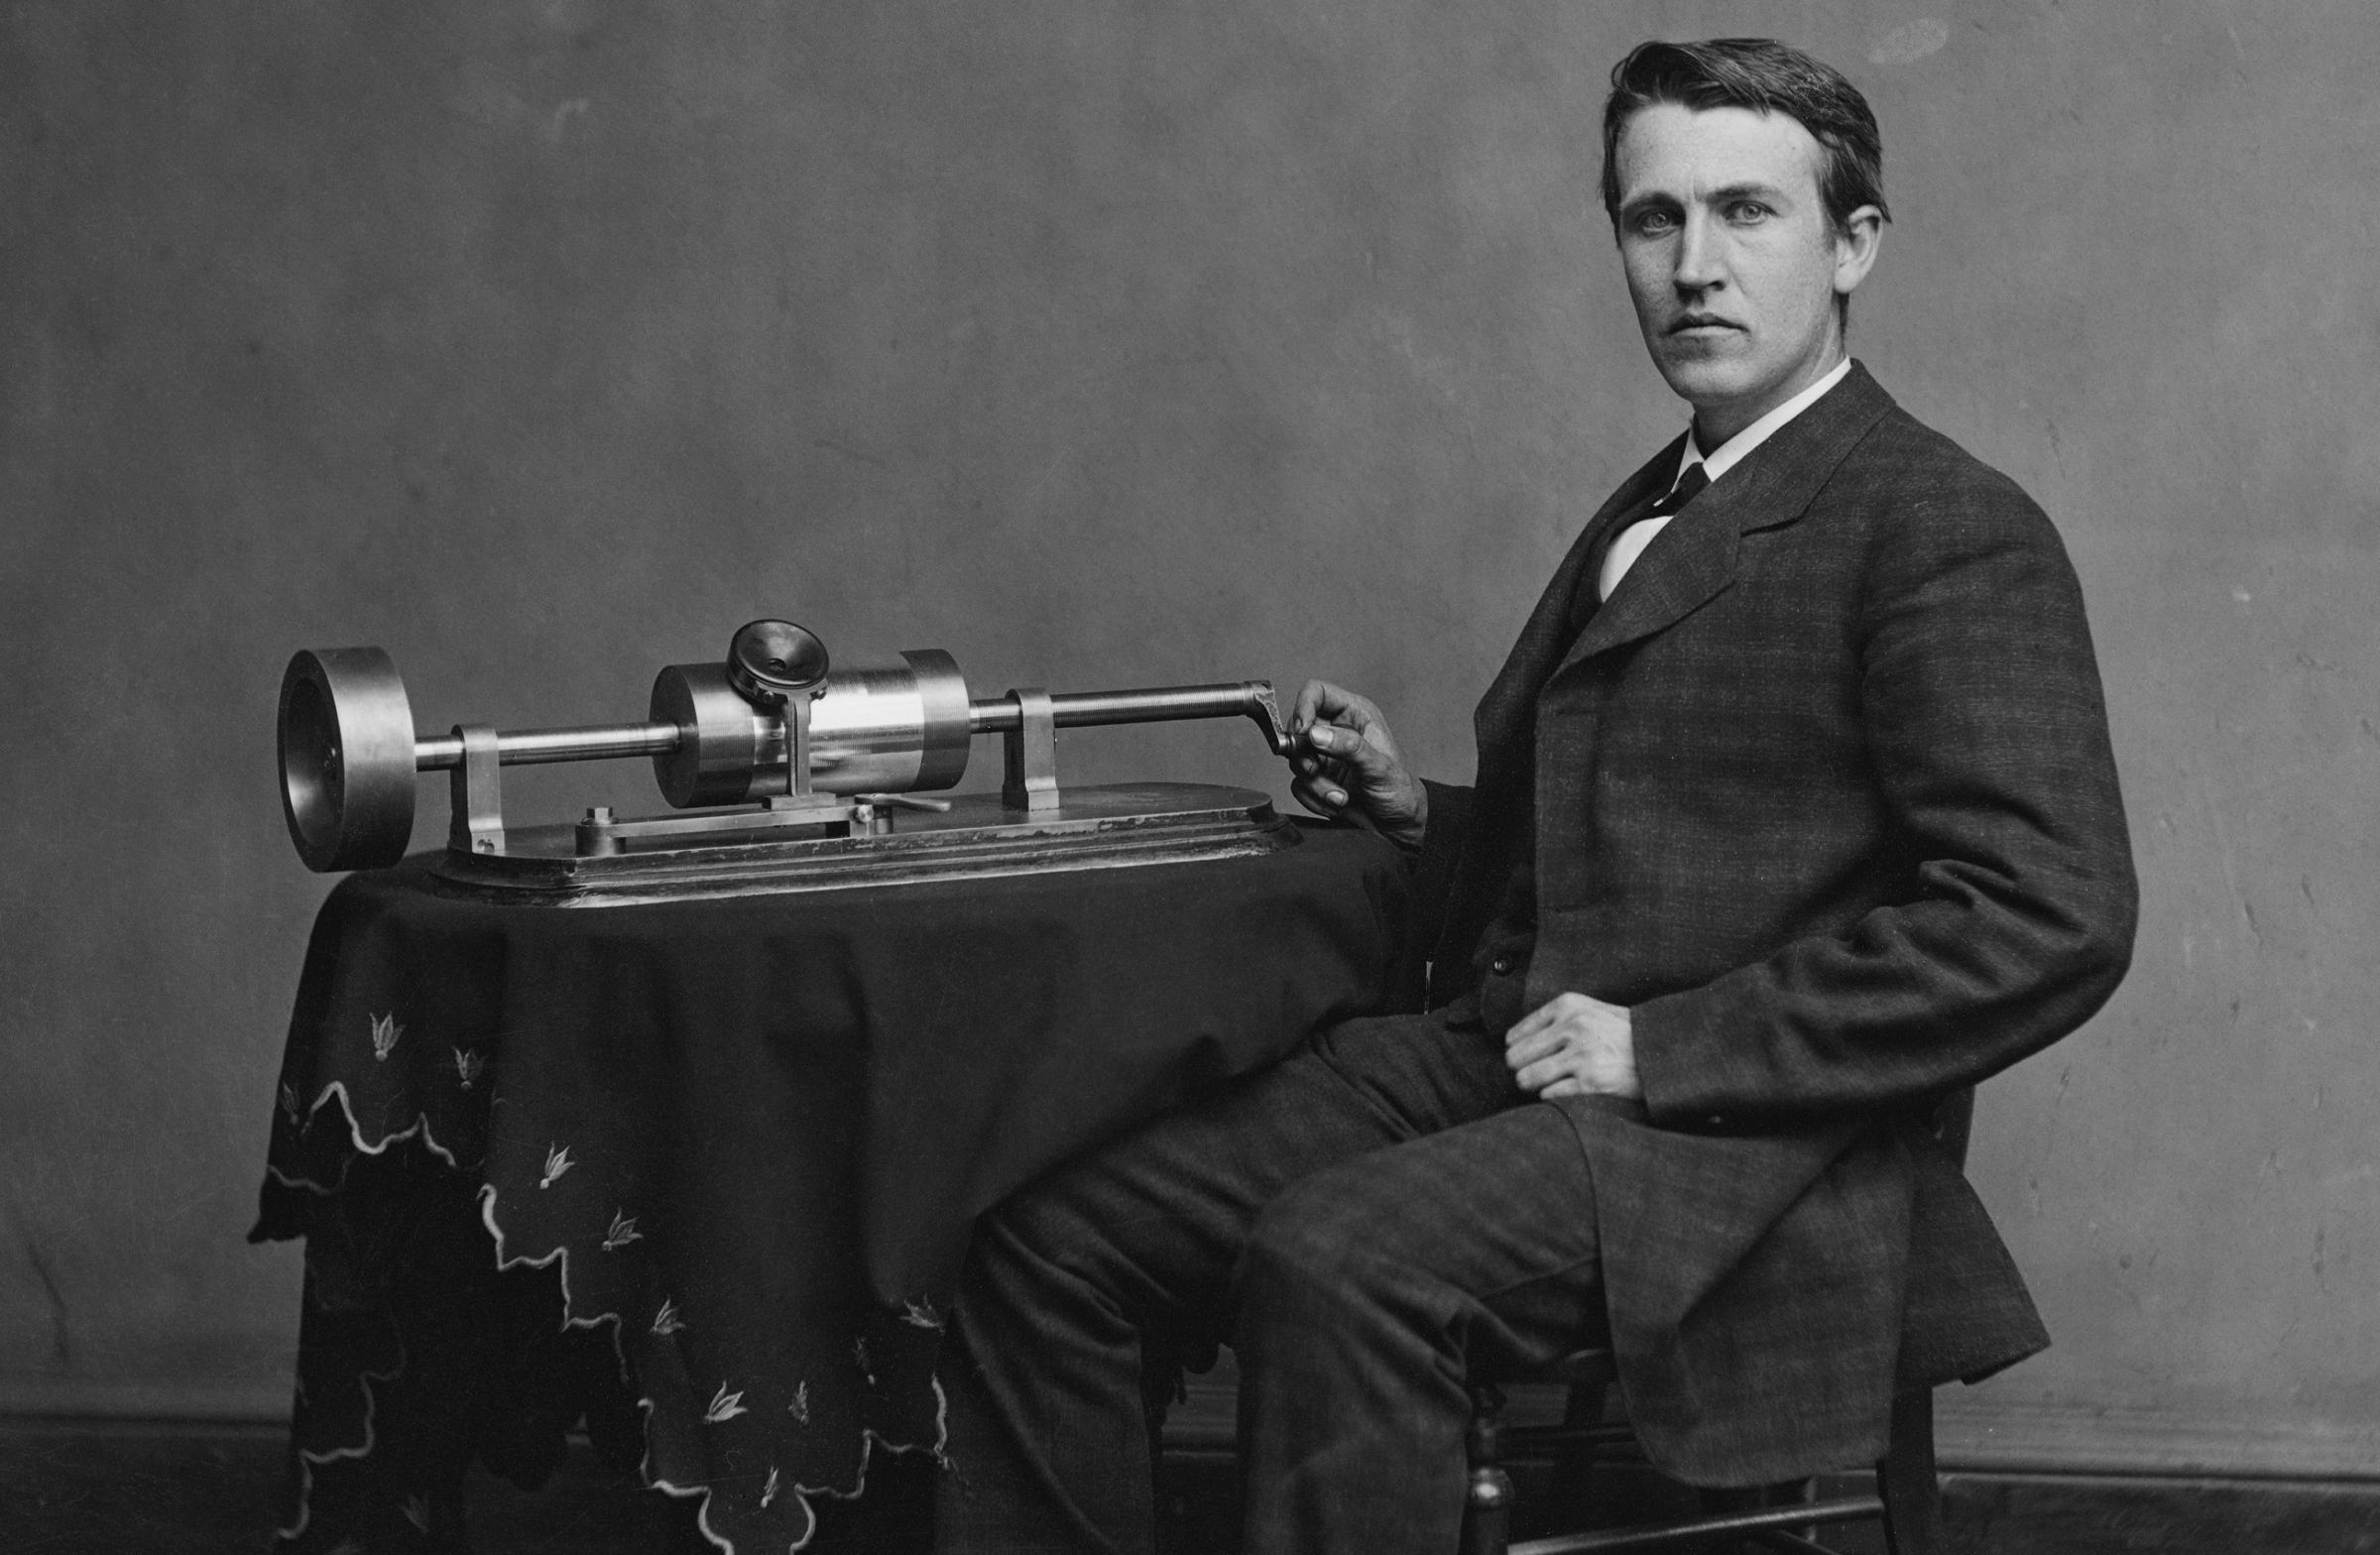 Thomas Edison and his phonograph - he made the first recording of the human voice on this day in 1877